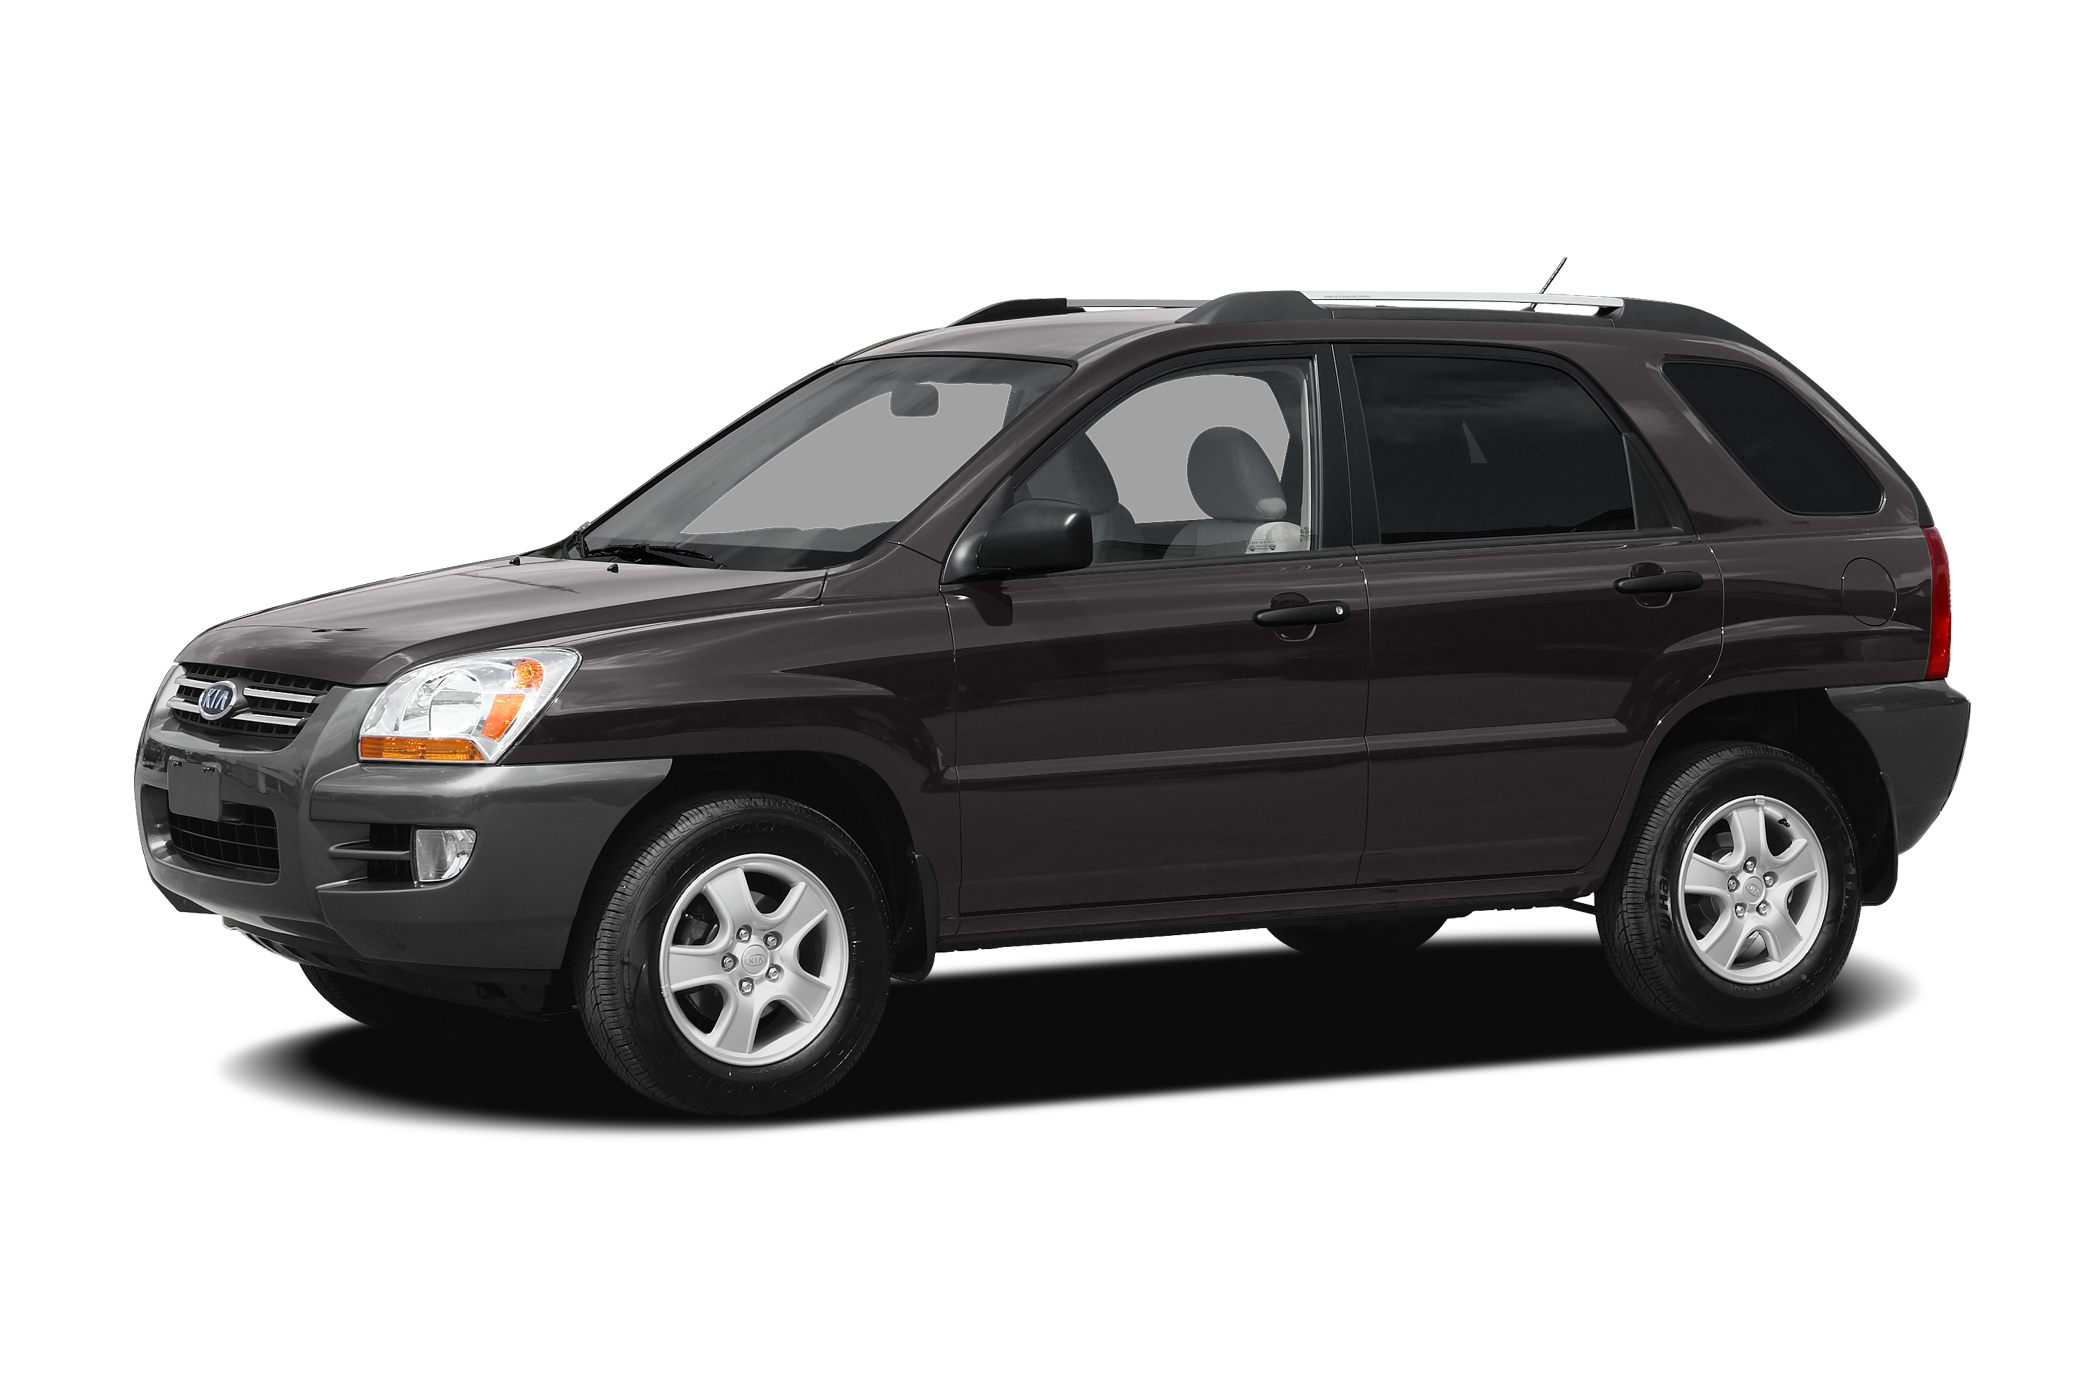 2007 Kia Sportage LX SUV for sale in Chicago for $6,995 with 128,922 miles